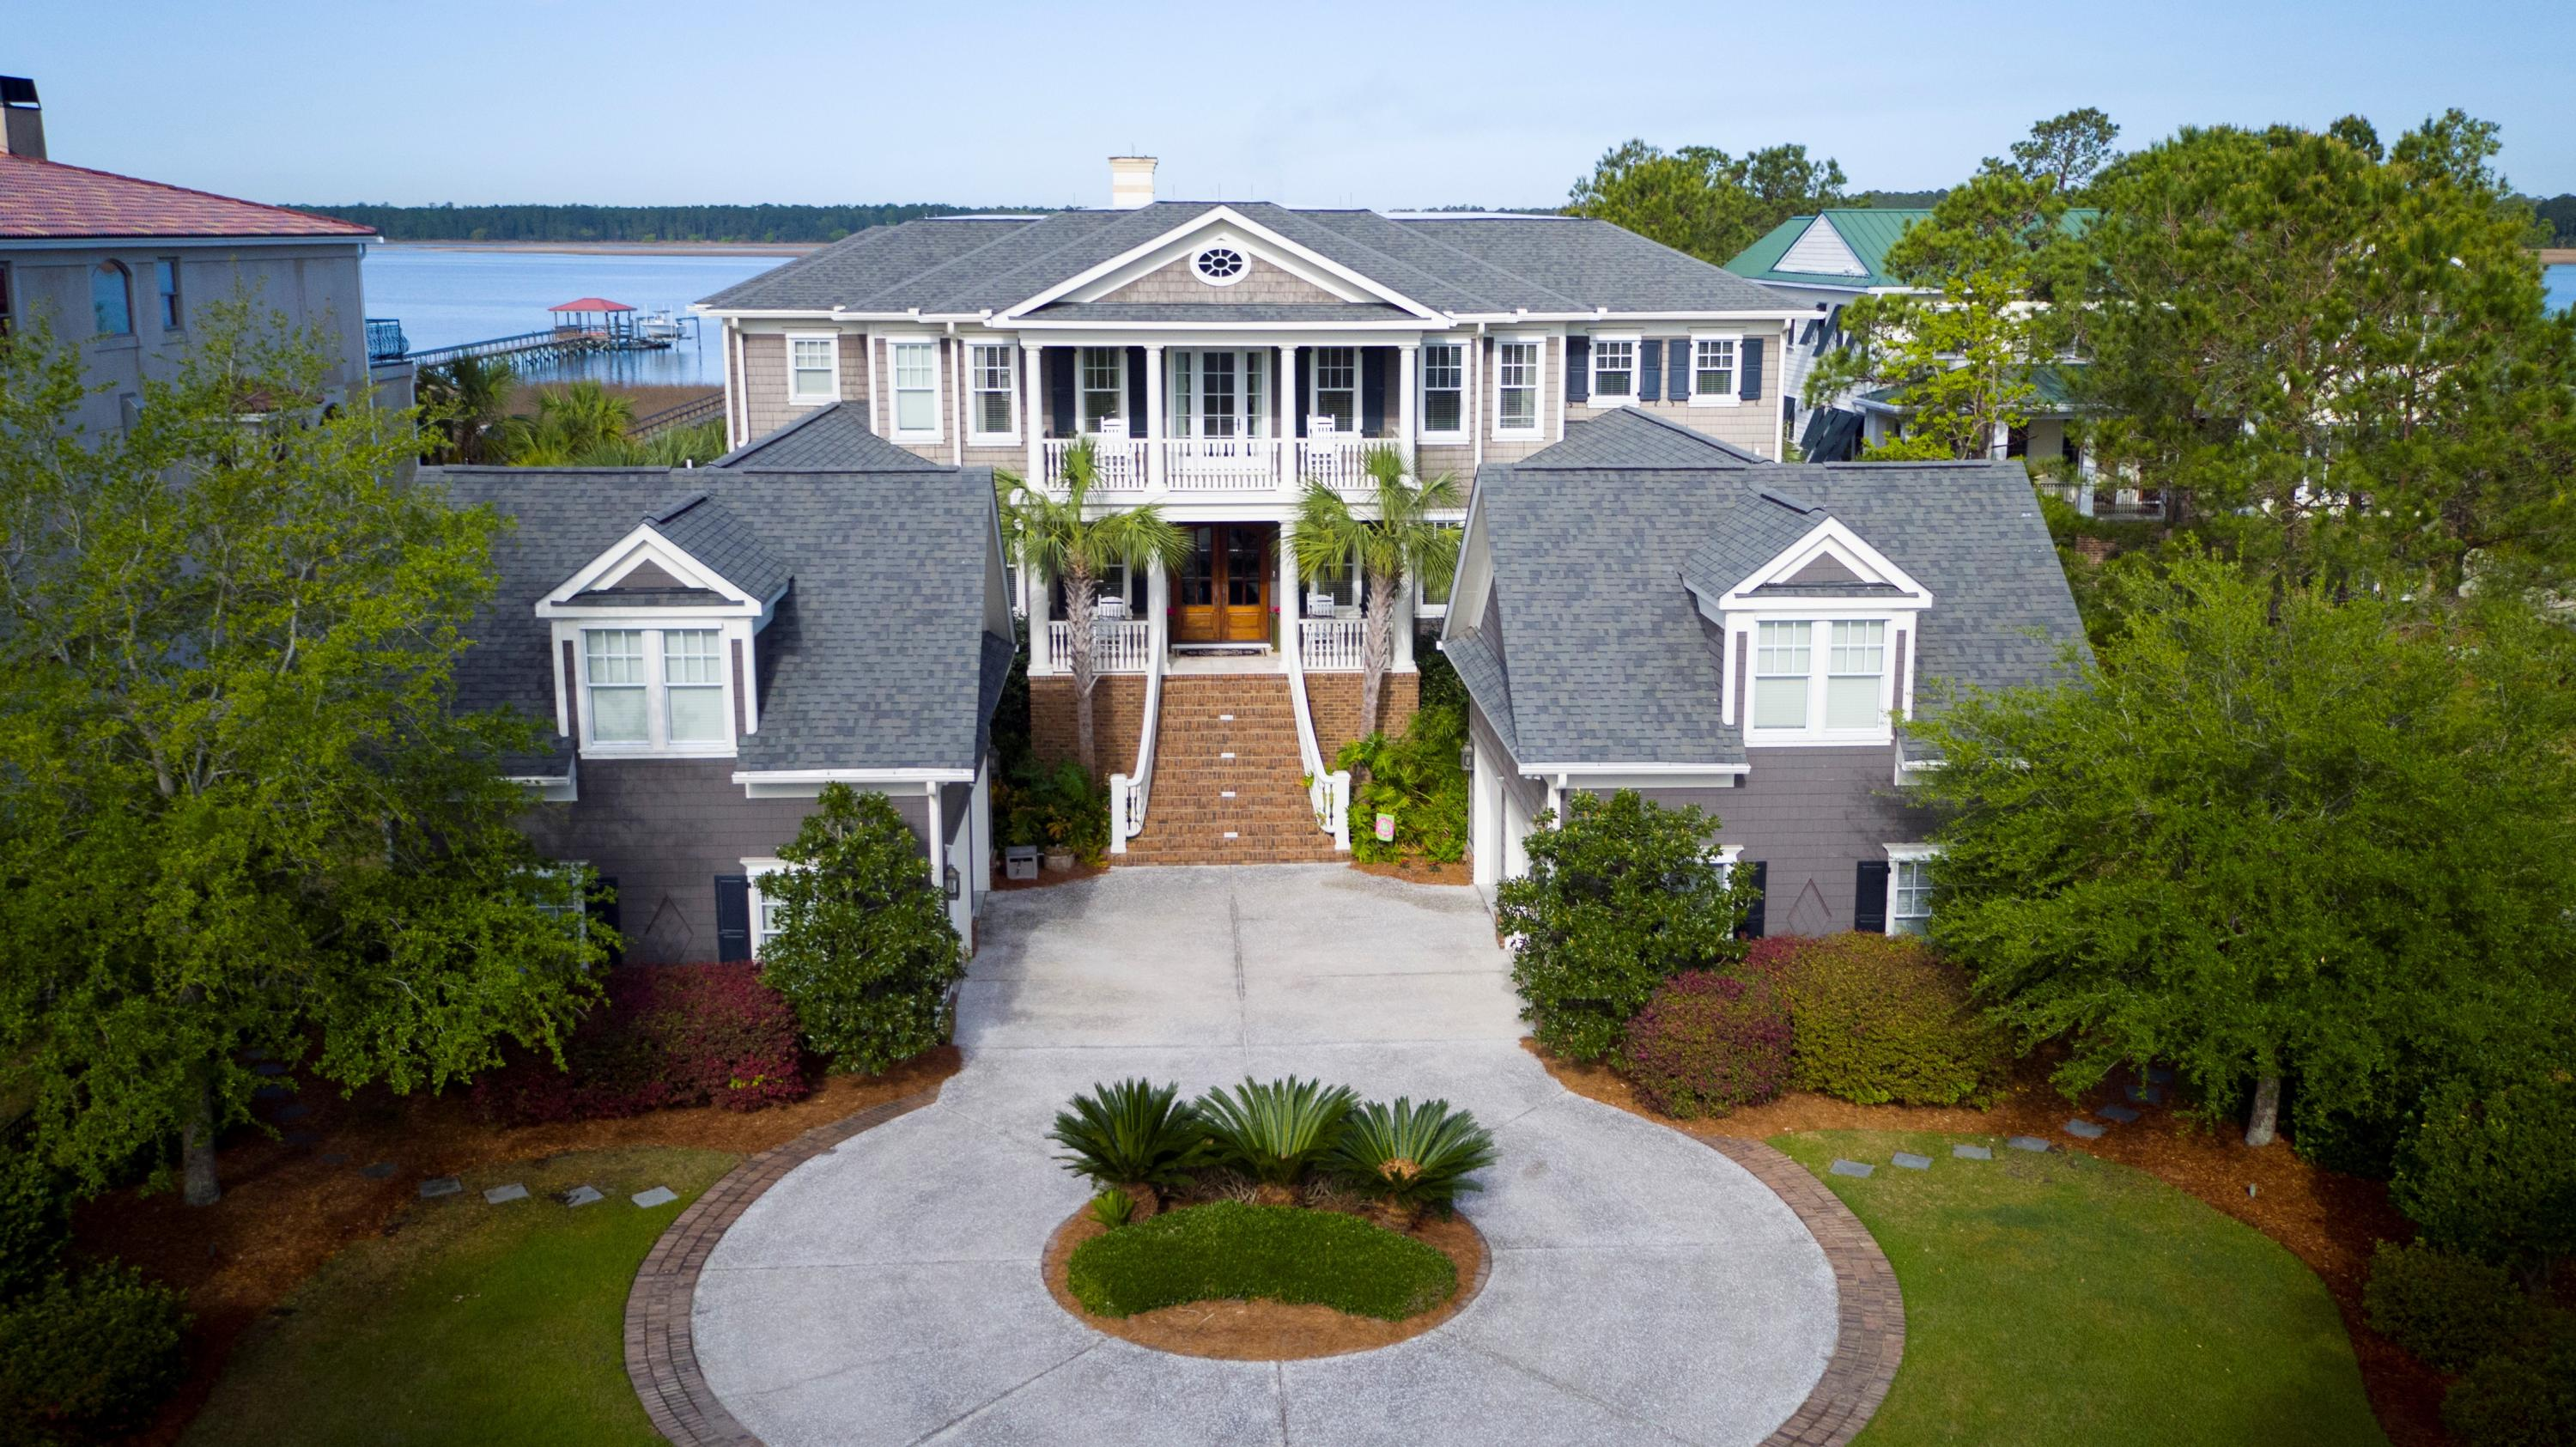 Rivertowne On The Wando Homes For Sale - 1986 Sandy Point, Mount Pleasant, SC - 53